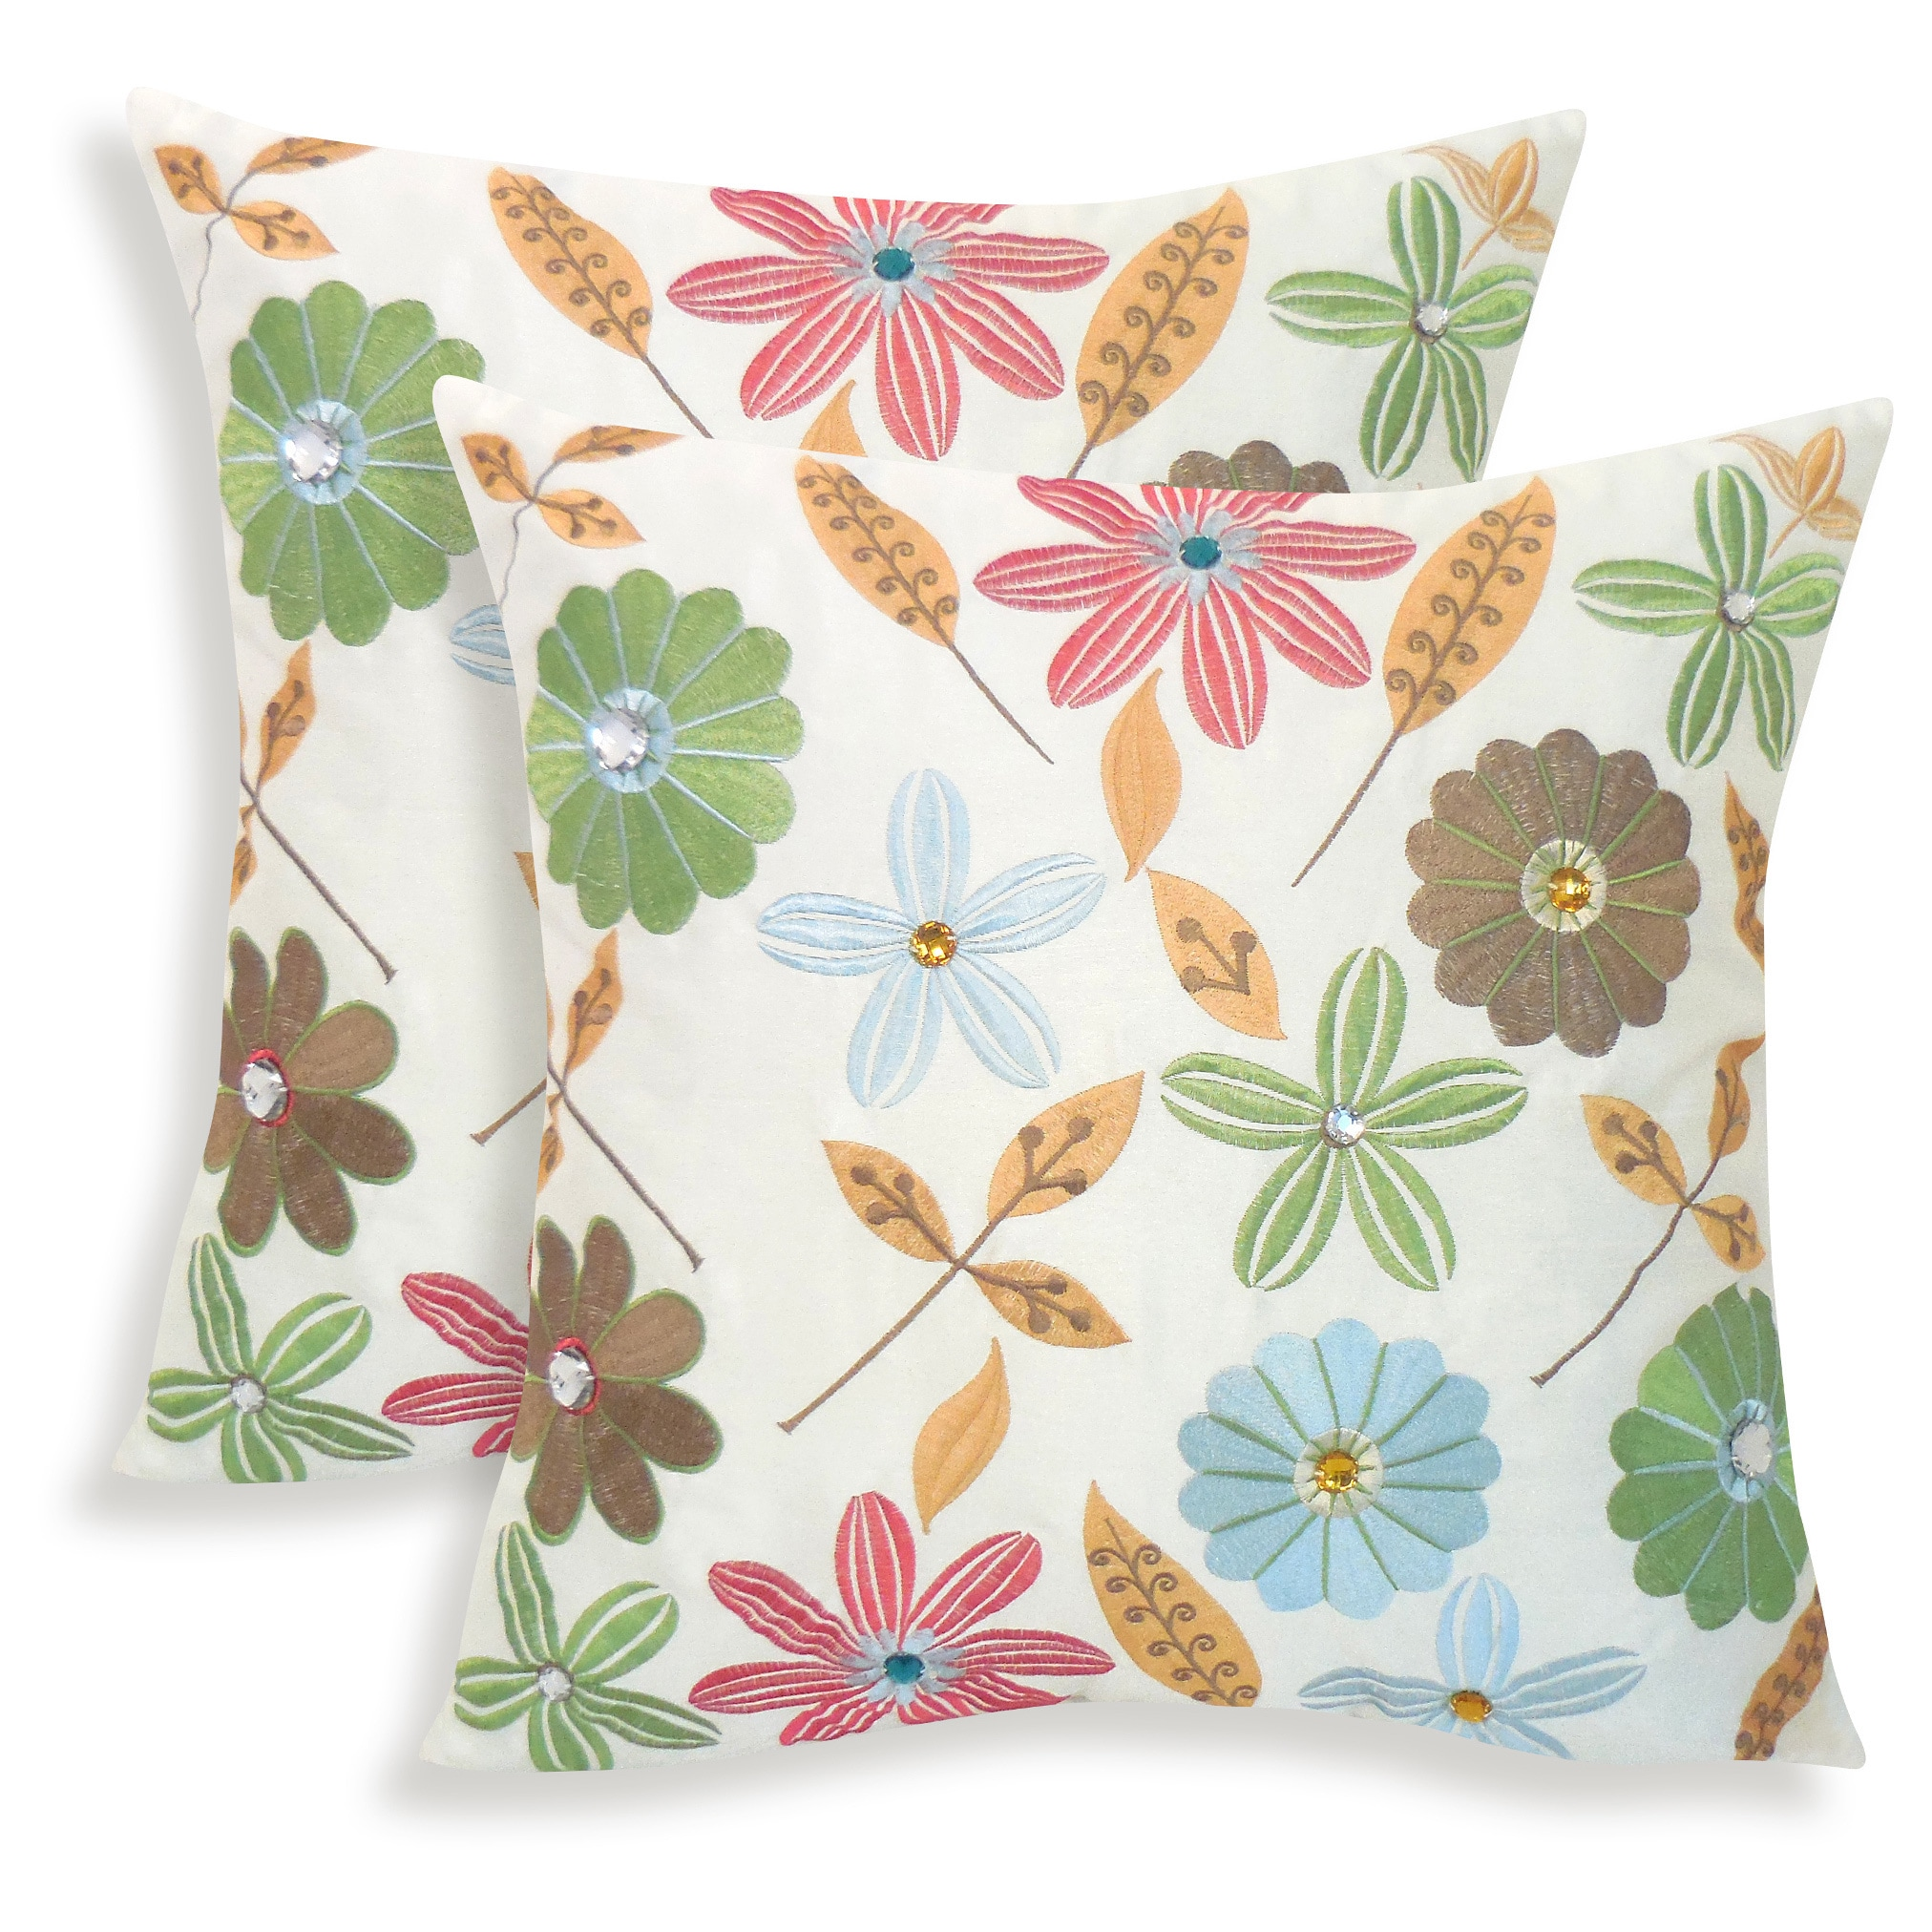 Arlee Milena Embroidered Jewel 18-inch Toss Pillow (Set of 2)